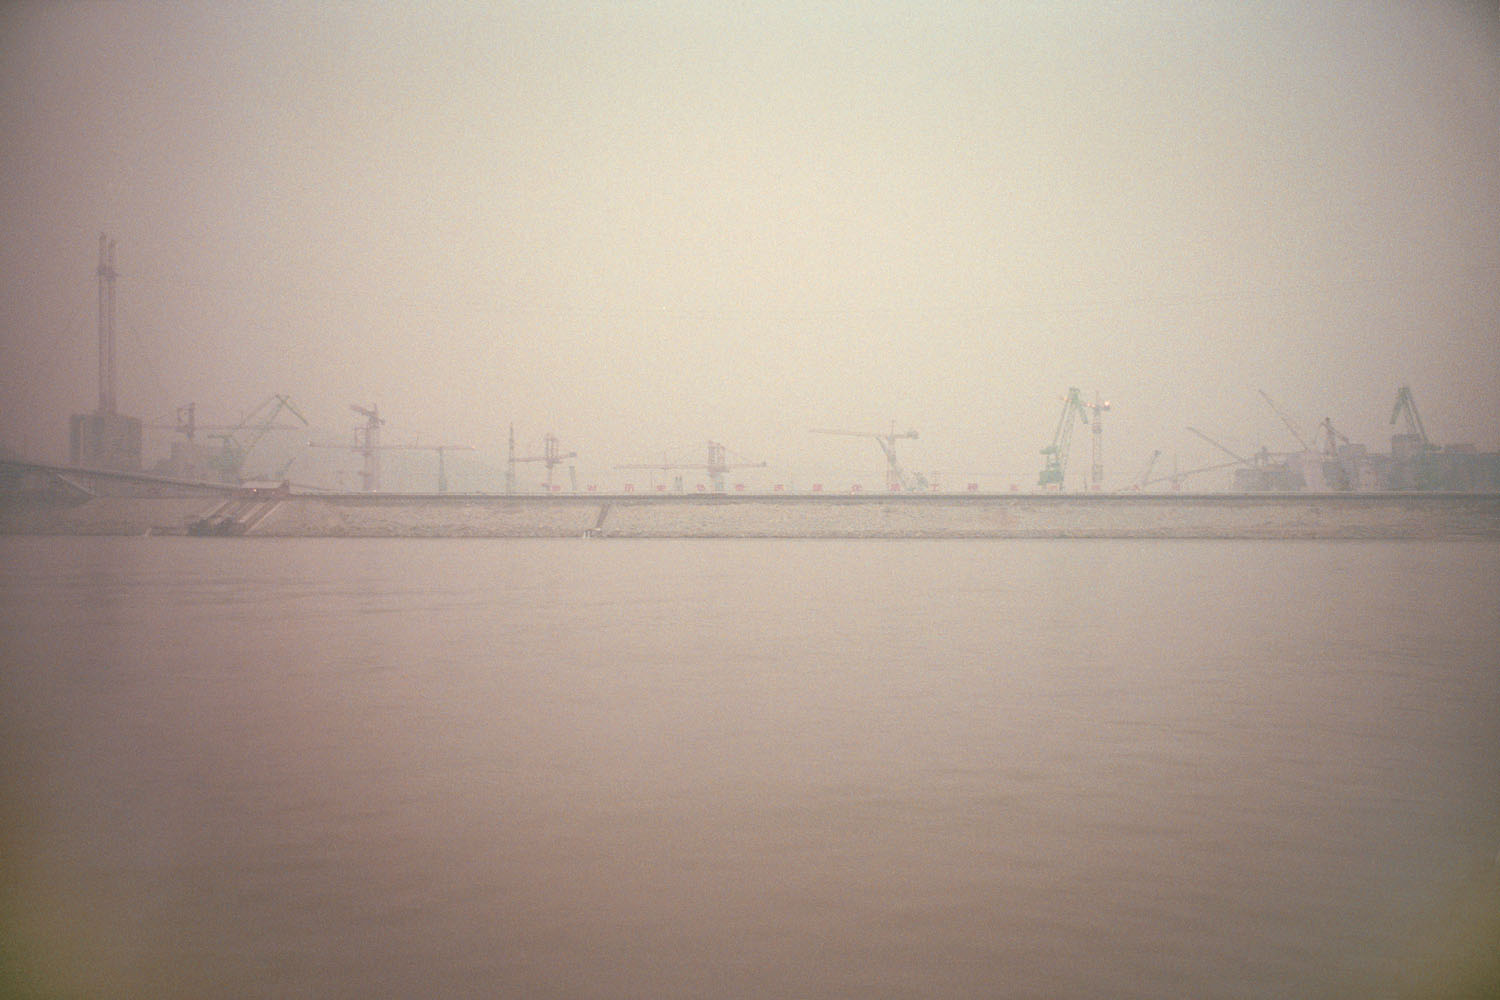 A view of the Three Gorges Dam under construction, a view seen from the Yangtze River. Sandouping, China. 2000.